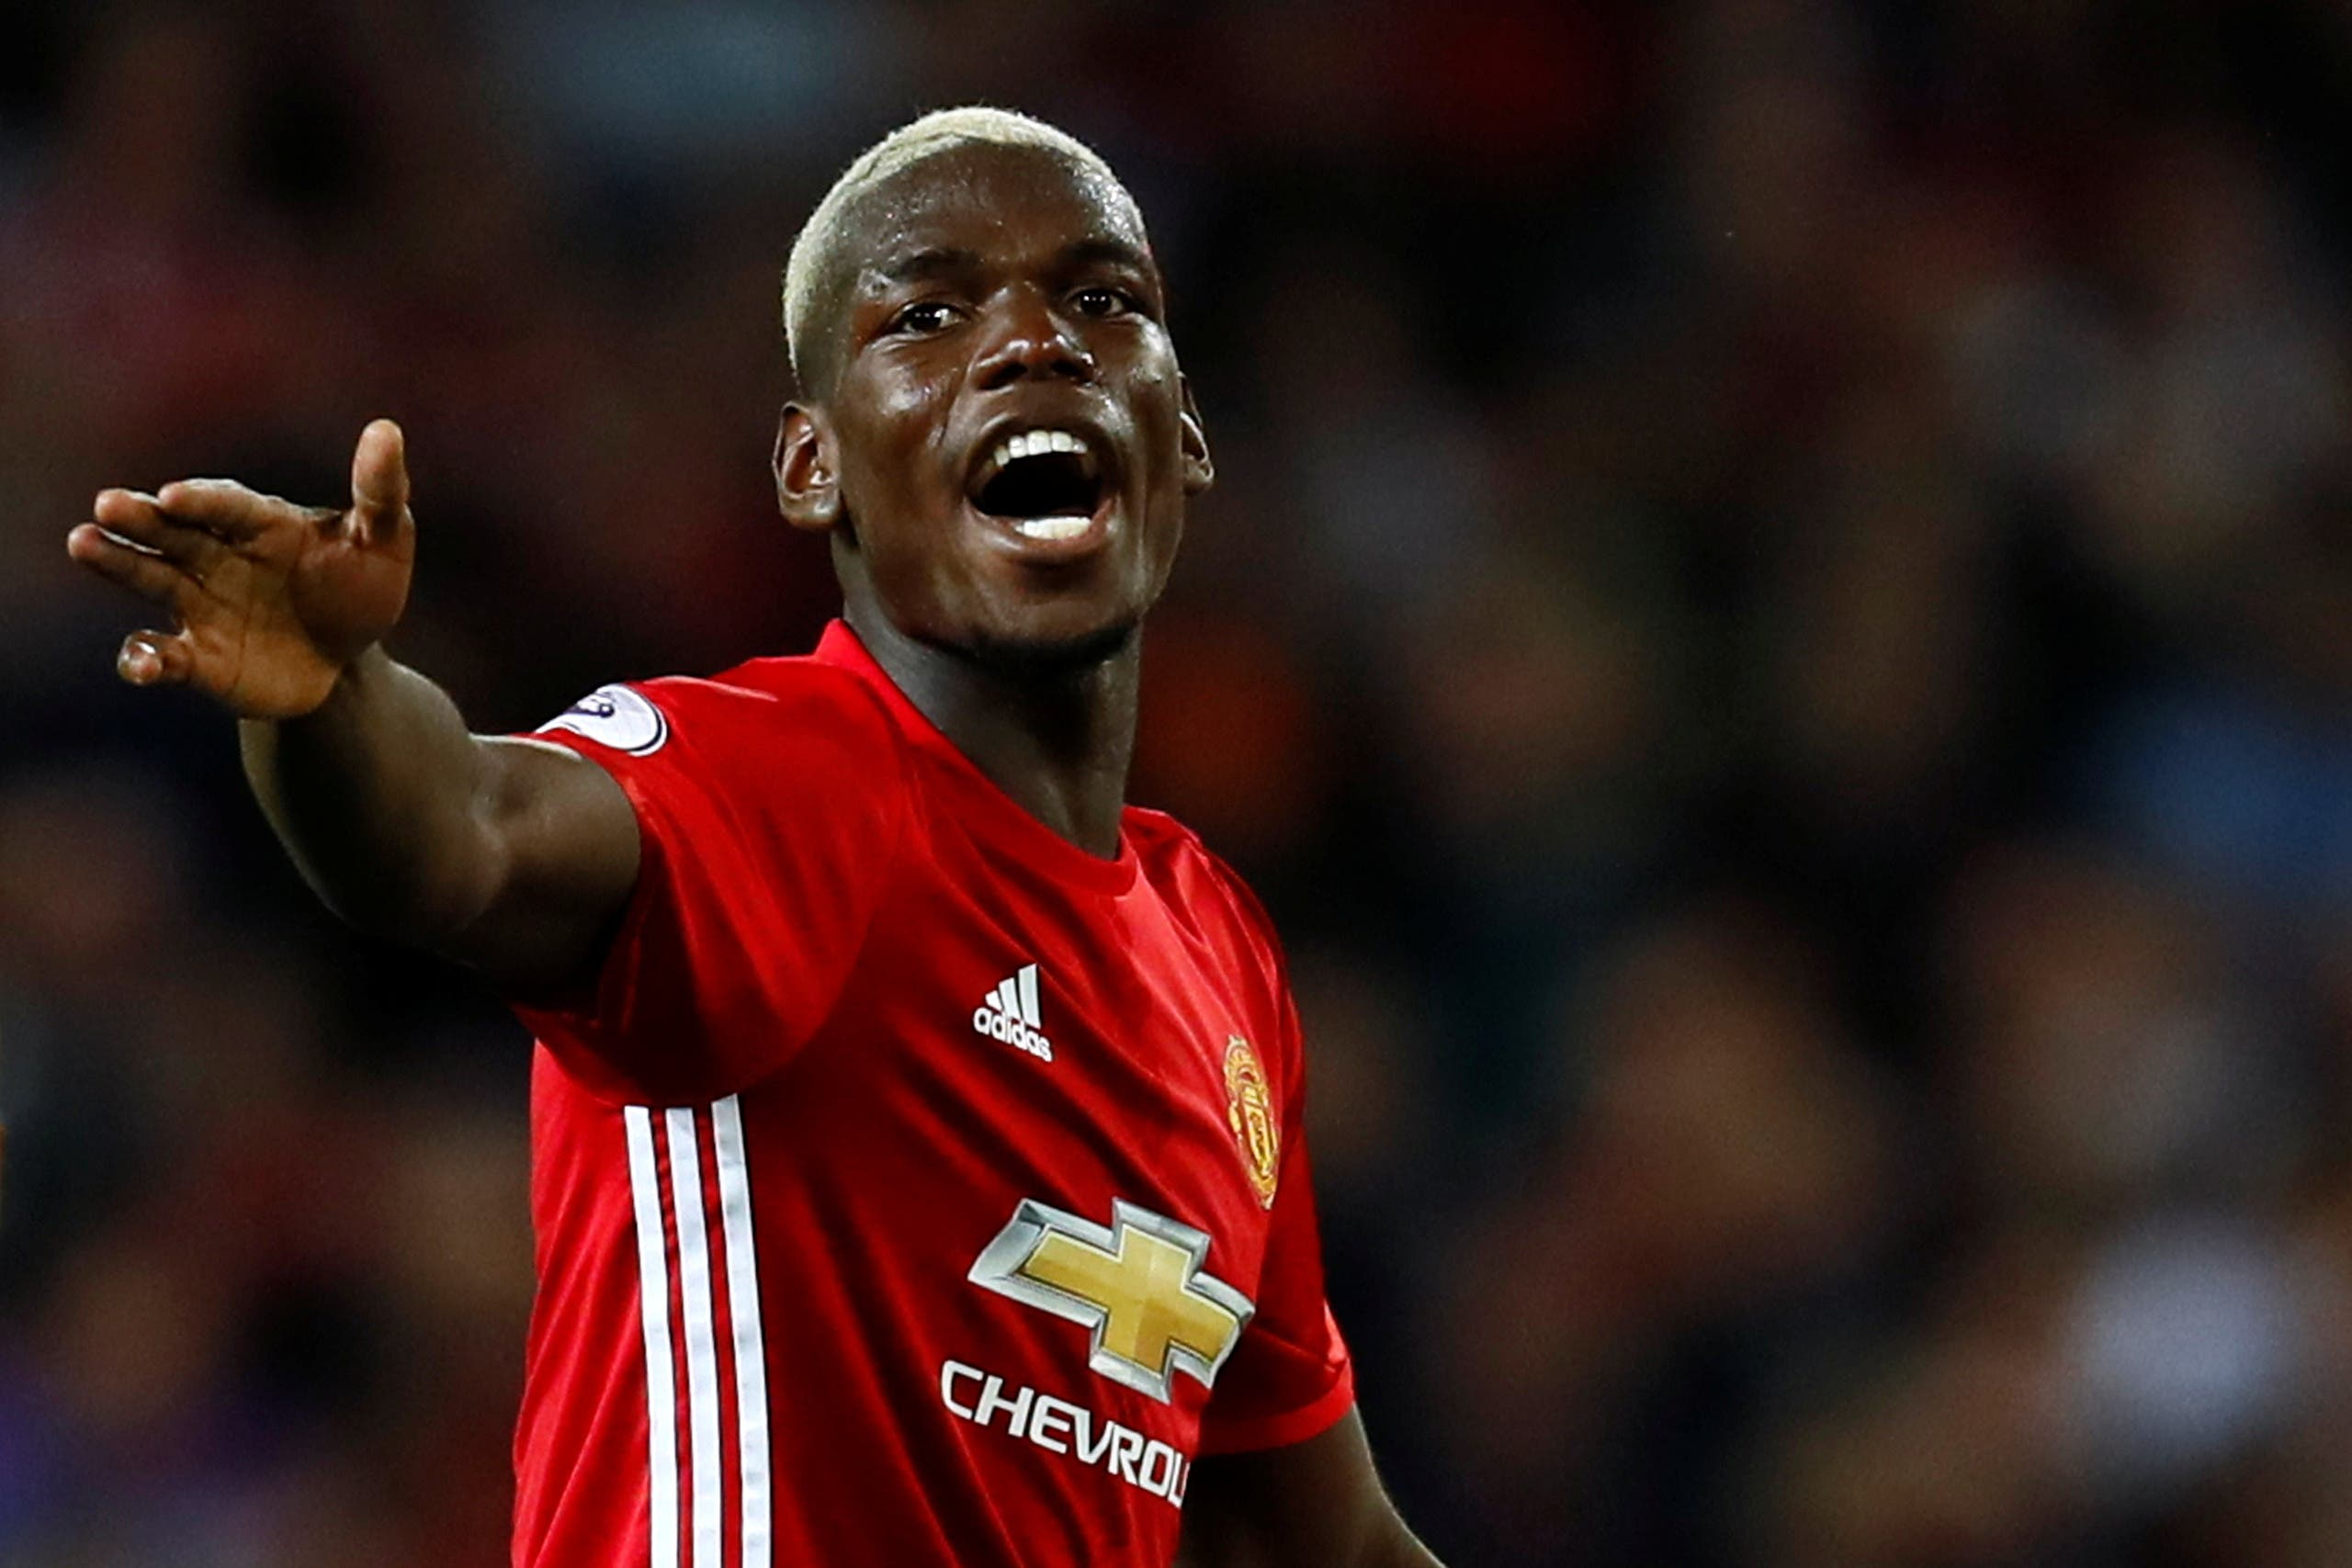 Paul Pogba joined Manchester United from Juventus for £89 million last month. (Reuters)